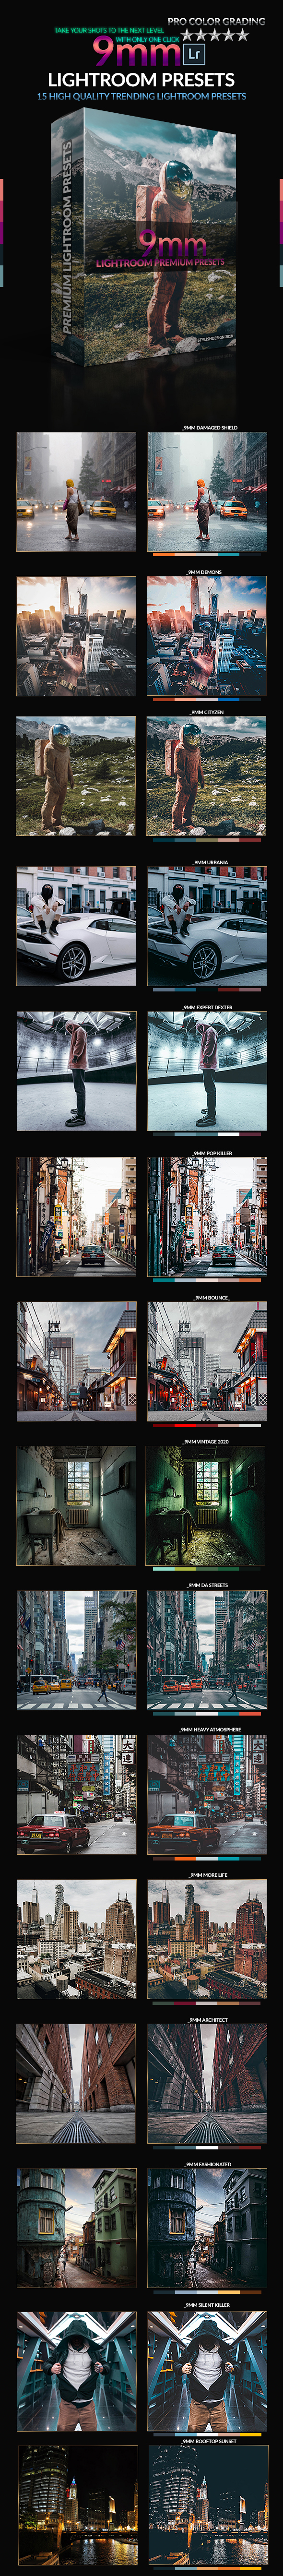 9mm PRO Lightroom Presets - Lightroom Presets Add-ons